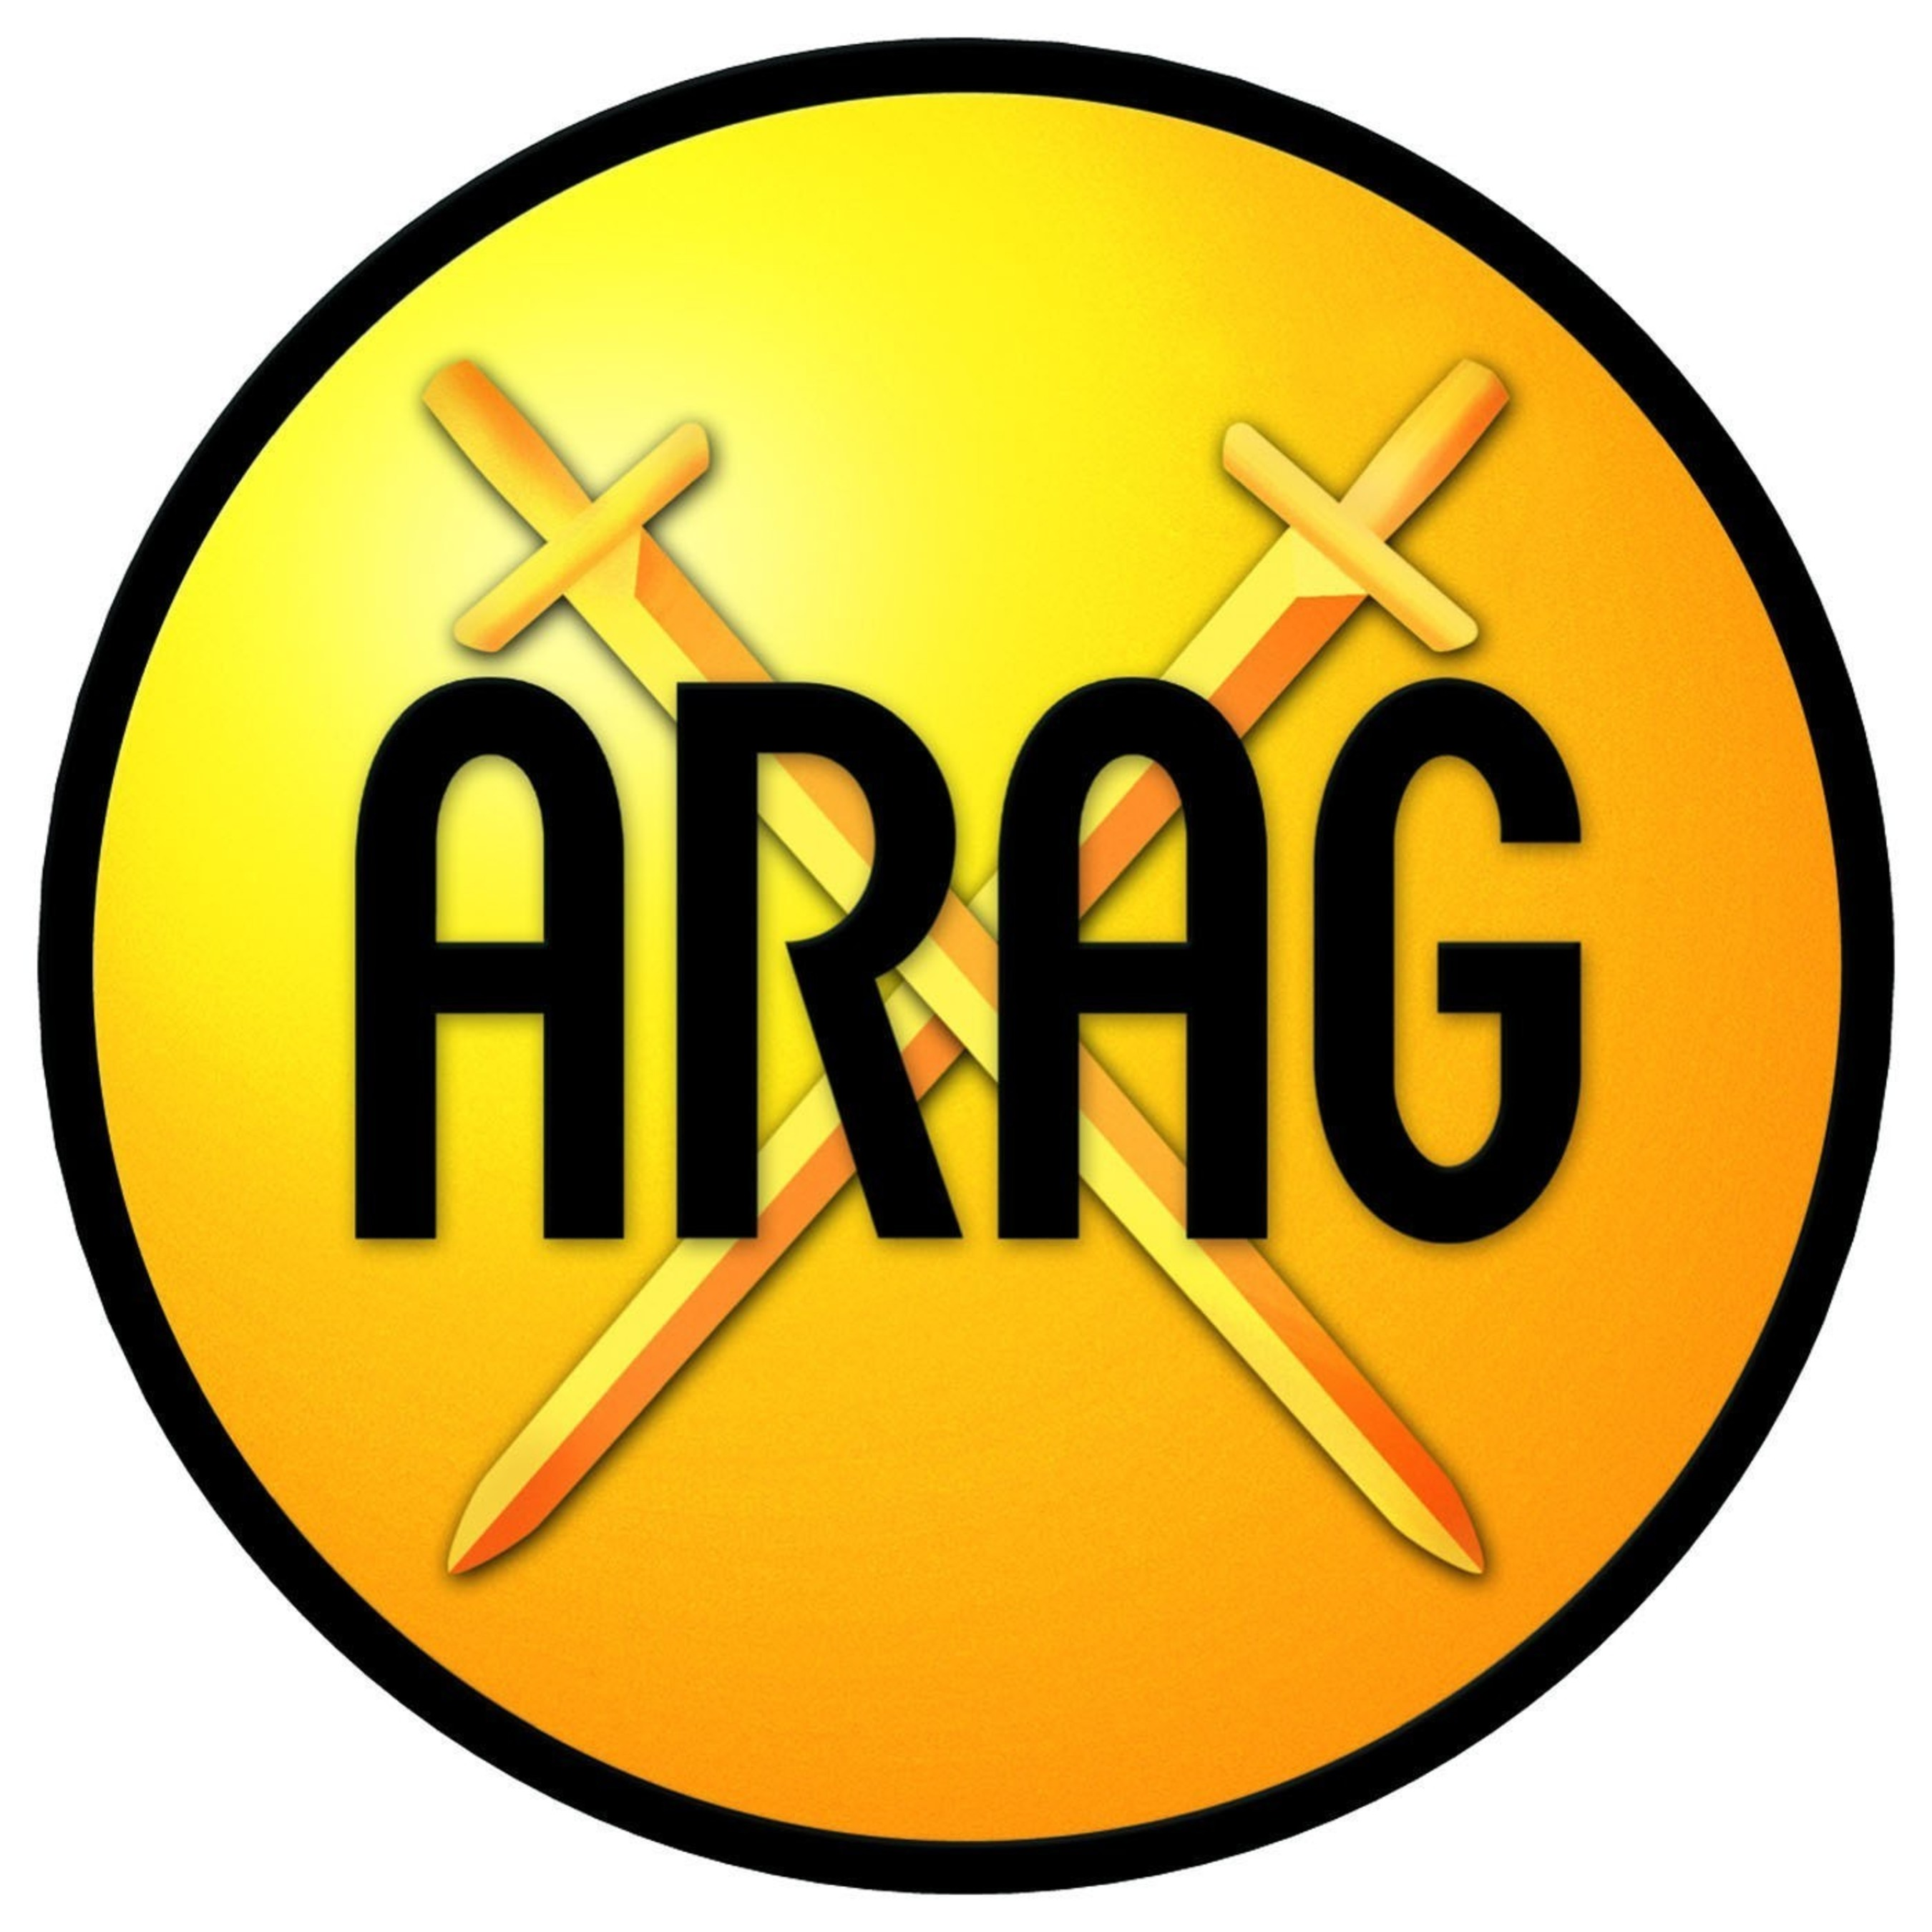 ARAG is a global provider of legal solutions